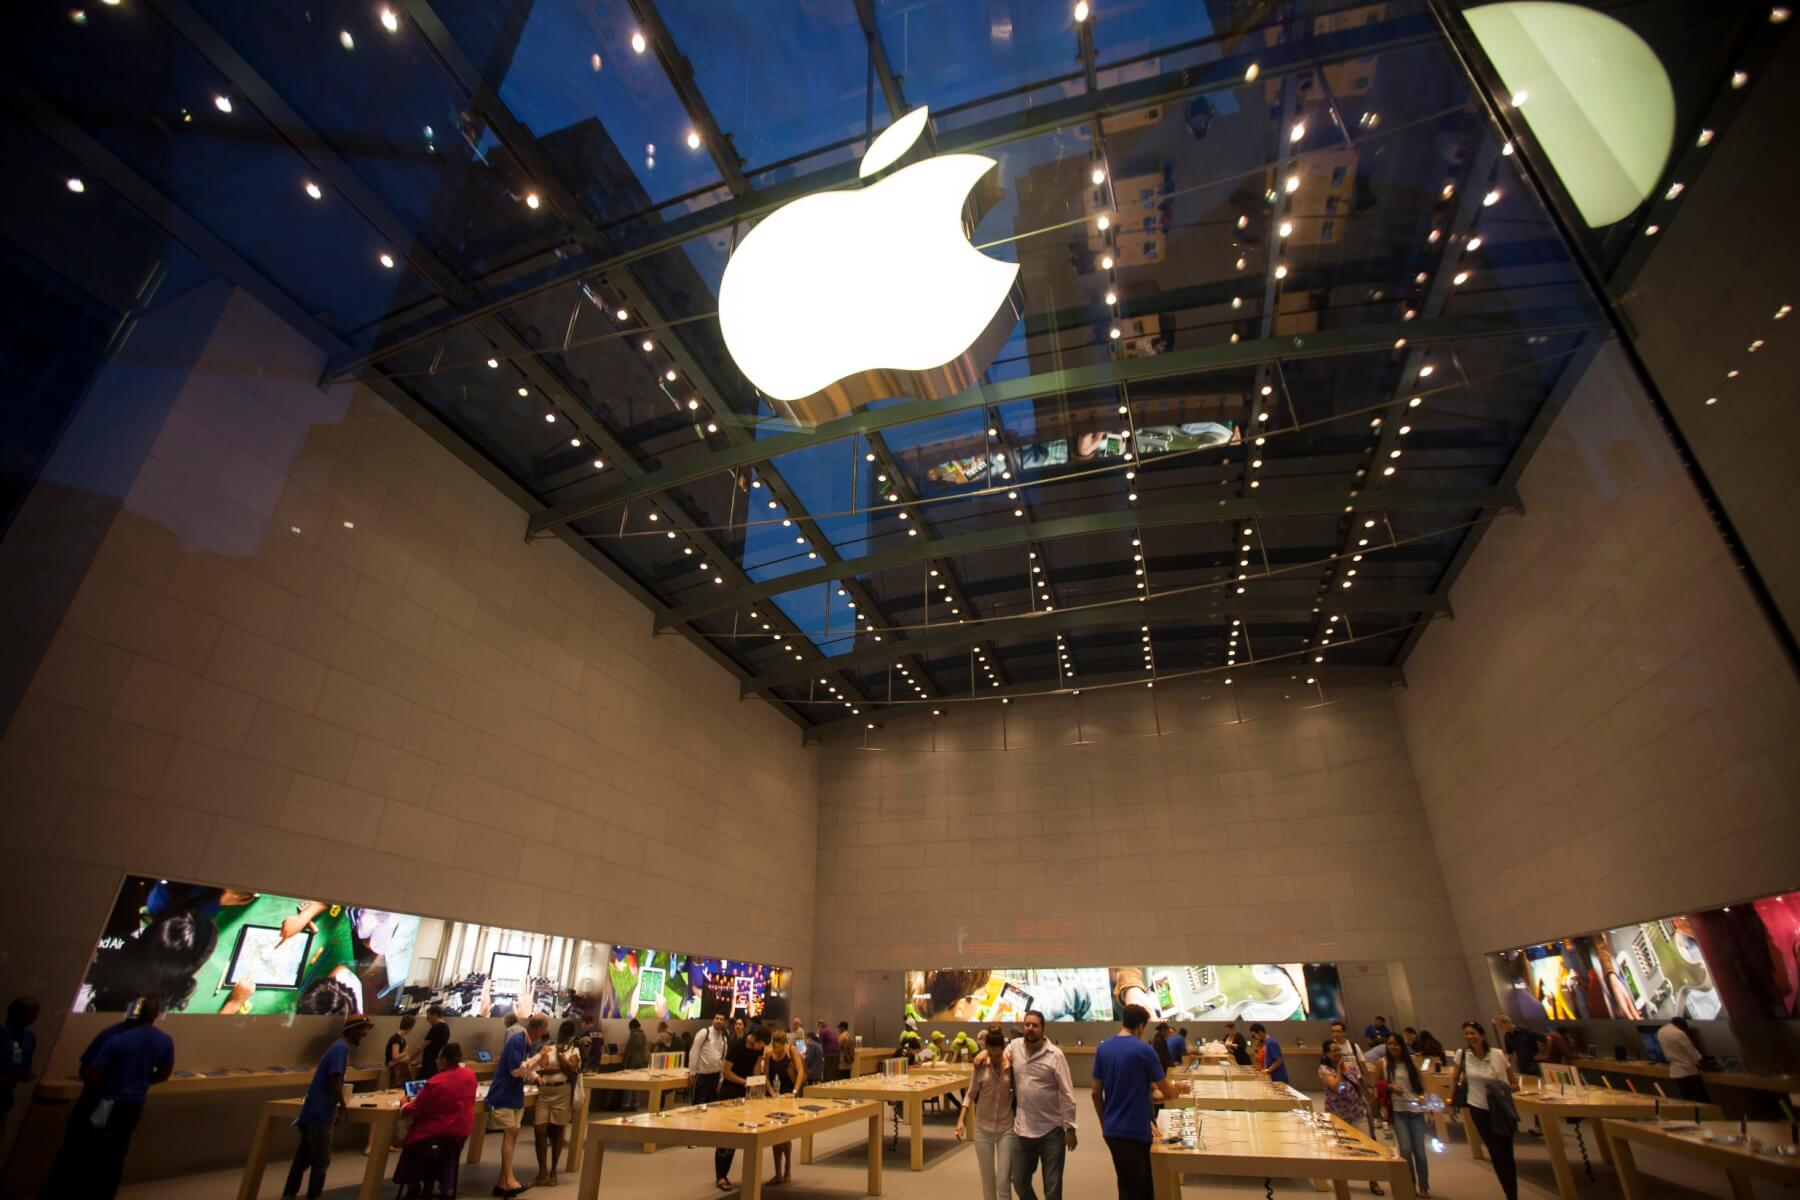 Apple's phased return to offices has begun in some regions